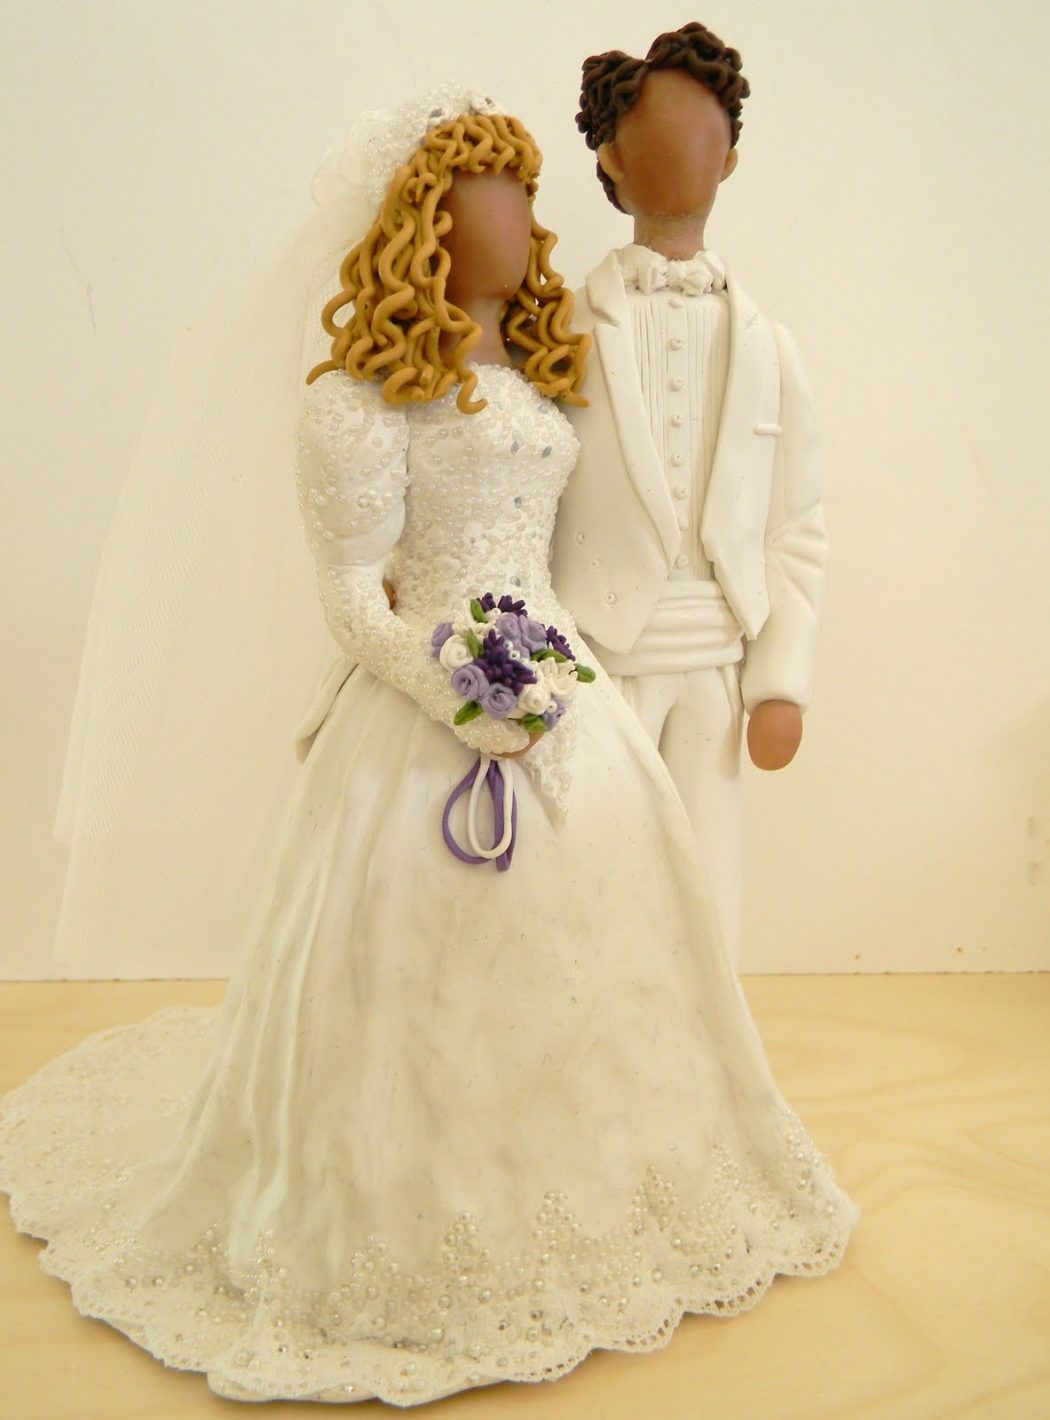 DSCN1949 Top 10 Most Unique and Funny Wedding Cake Toppers 2019